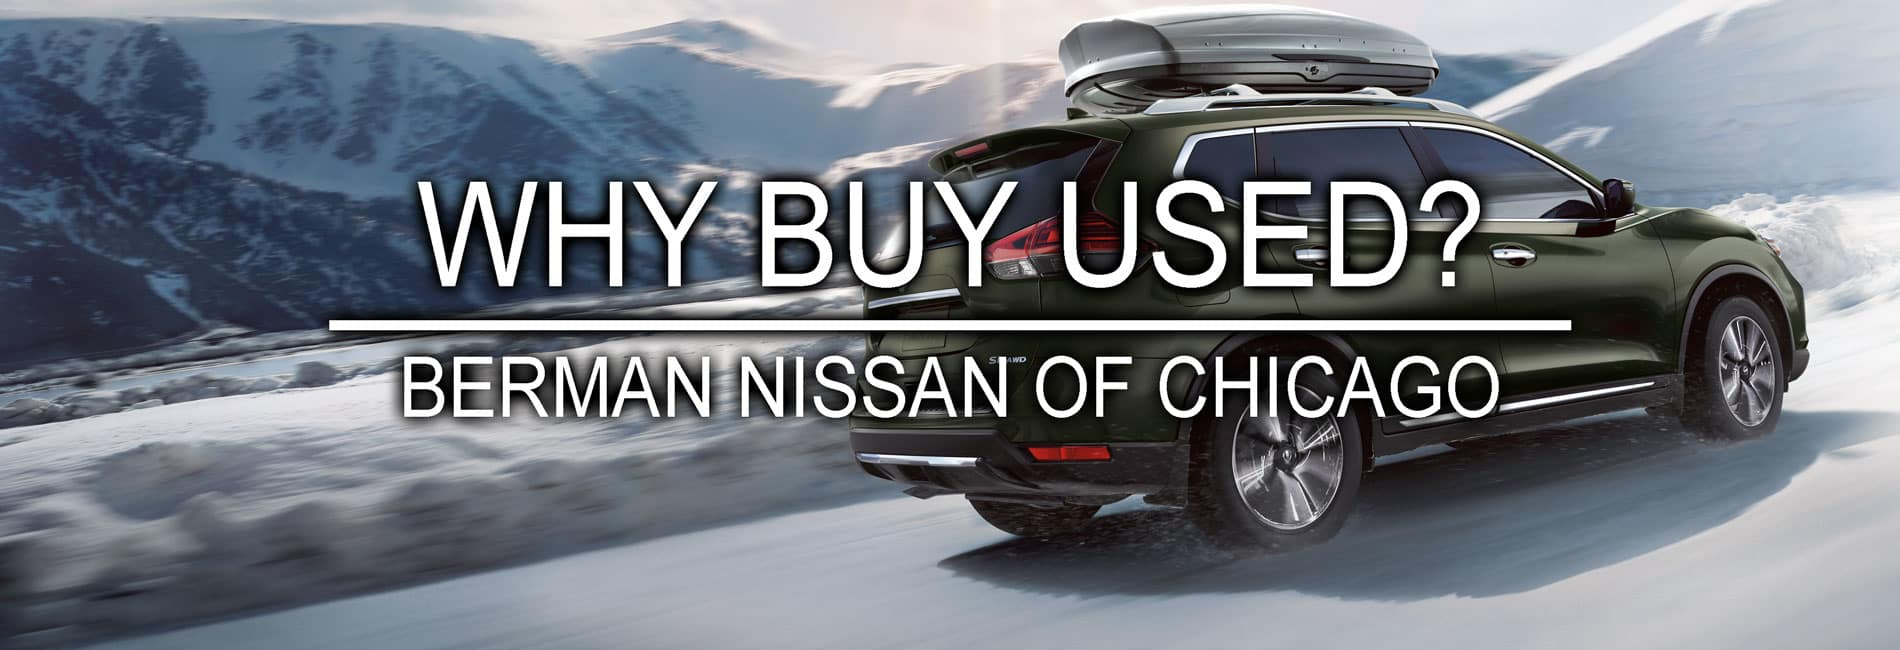 Why Buy Used at Berman Nissan of Chicago